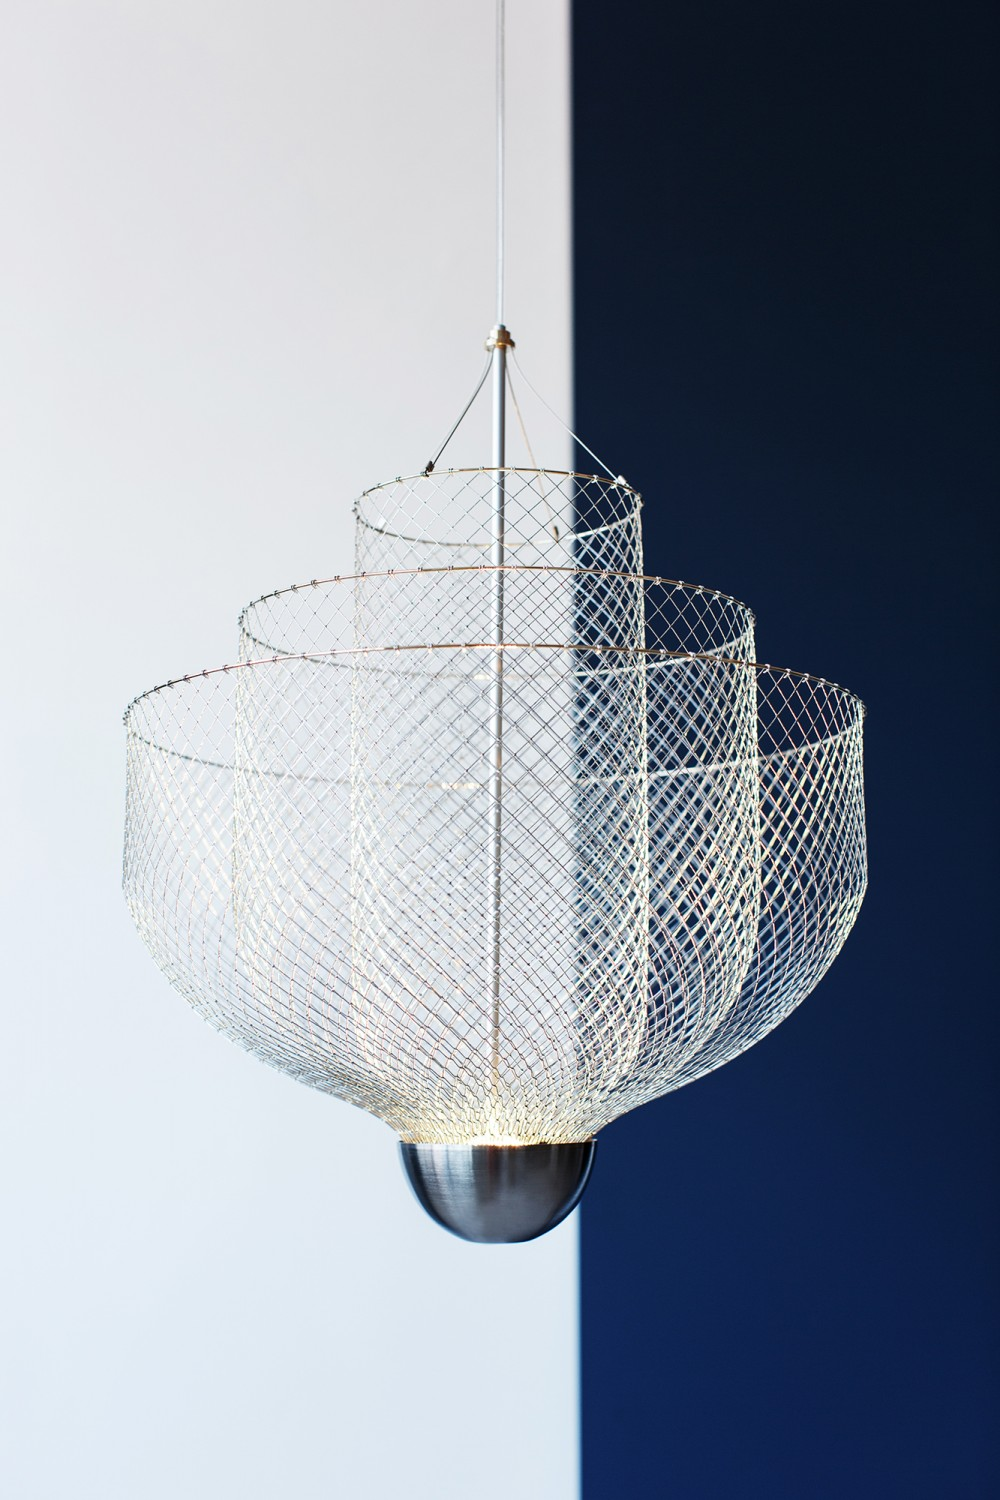 Meshmatics Chandelier by Rick Tegelaar |Quick Dose of Inspiration #43 | Flodeau.com